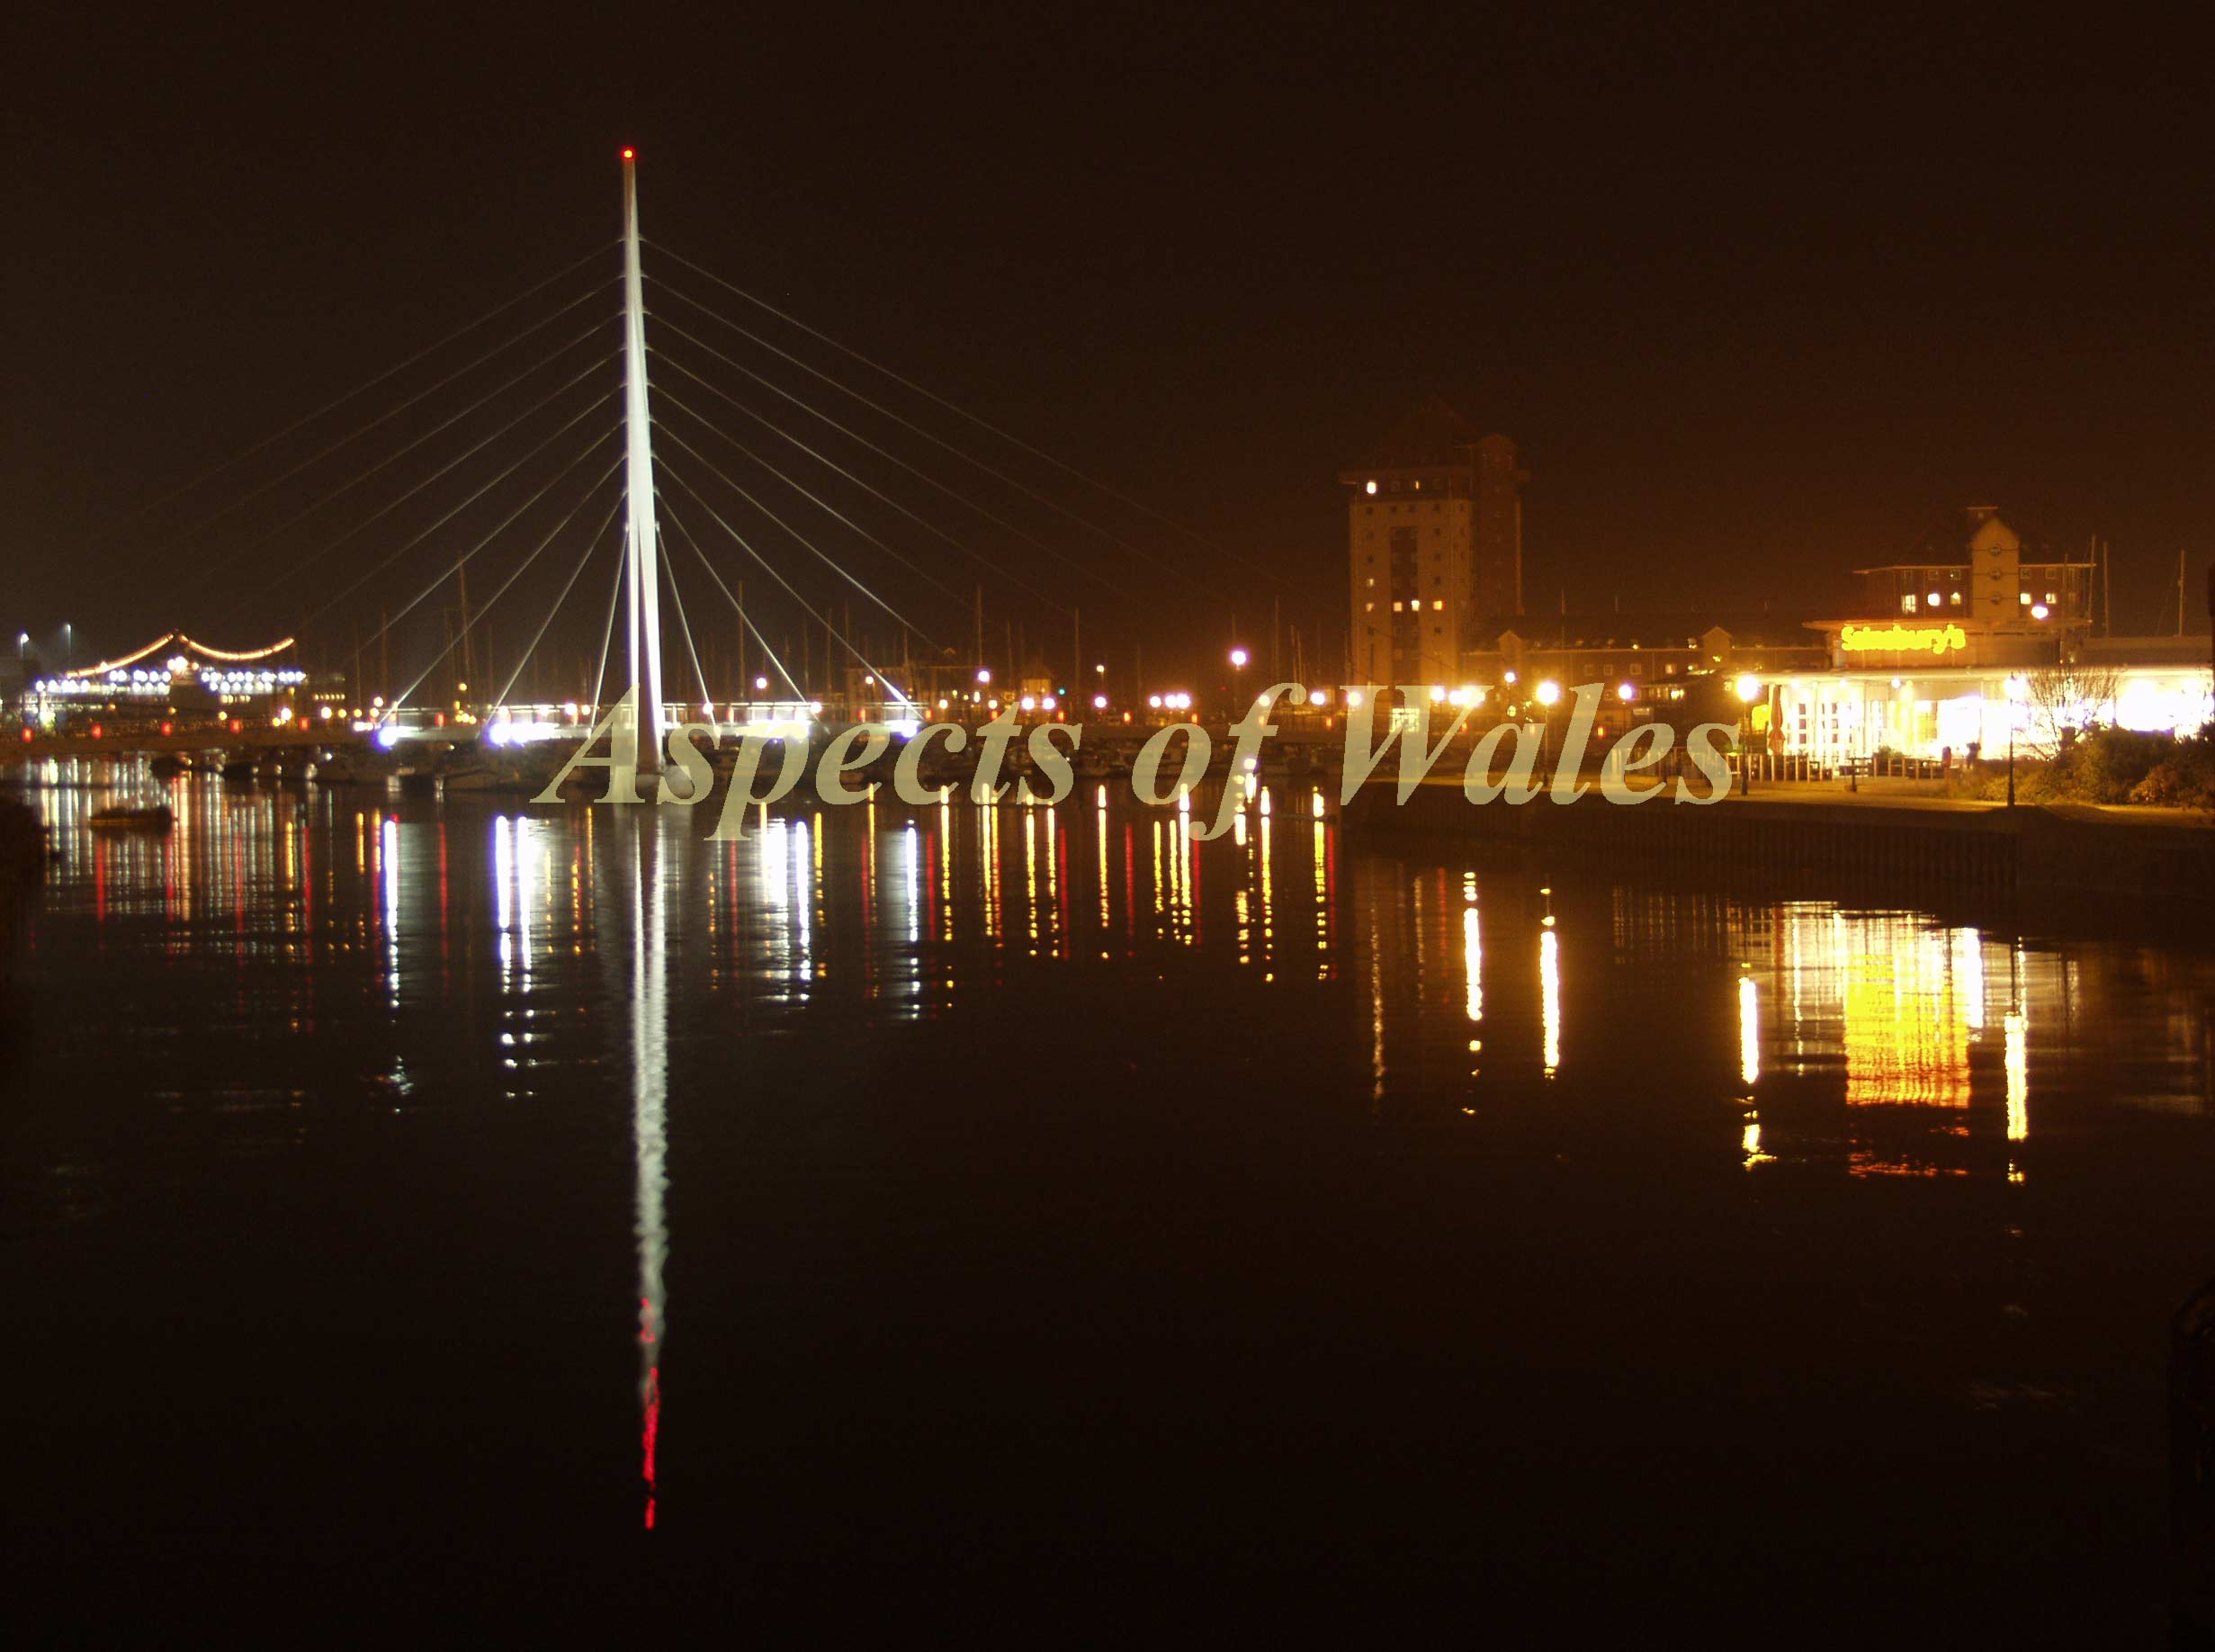 Tawe sailbridge, Swansea